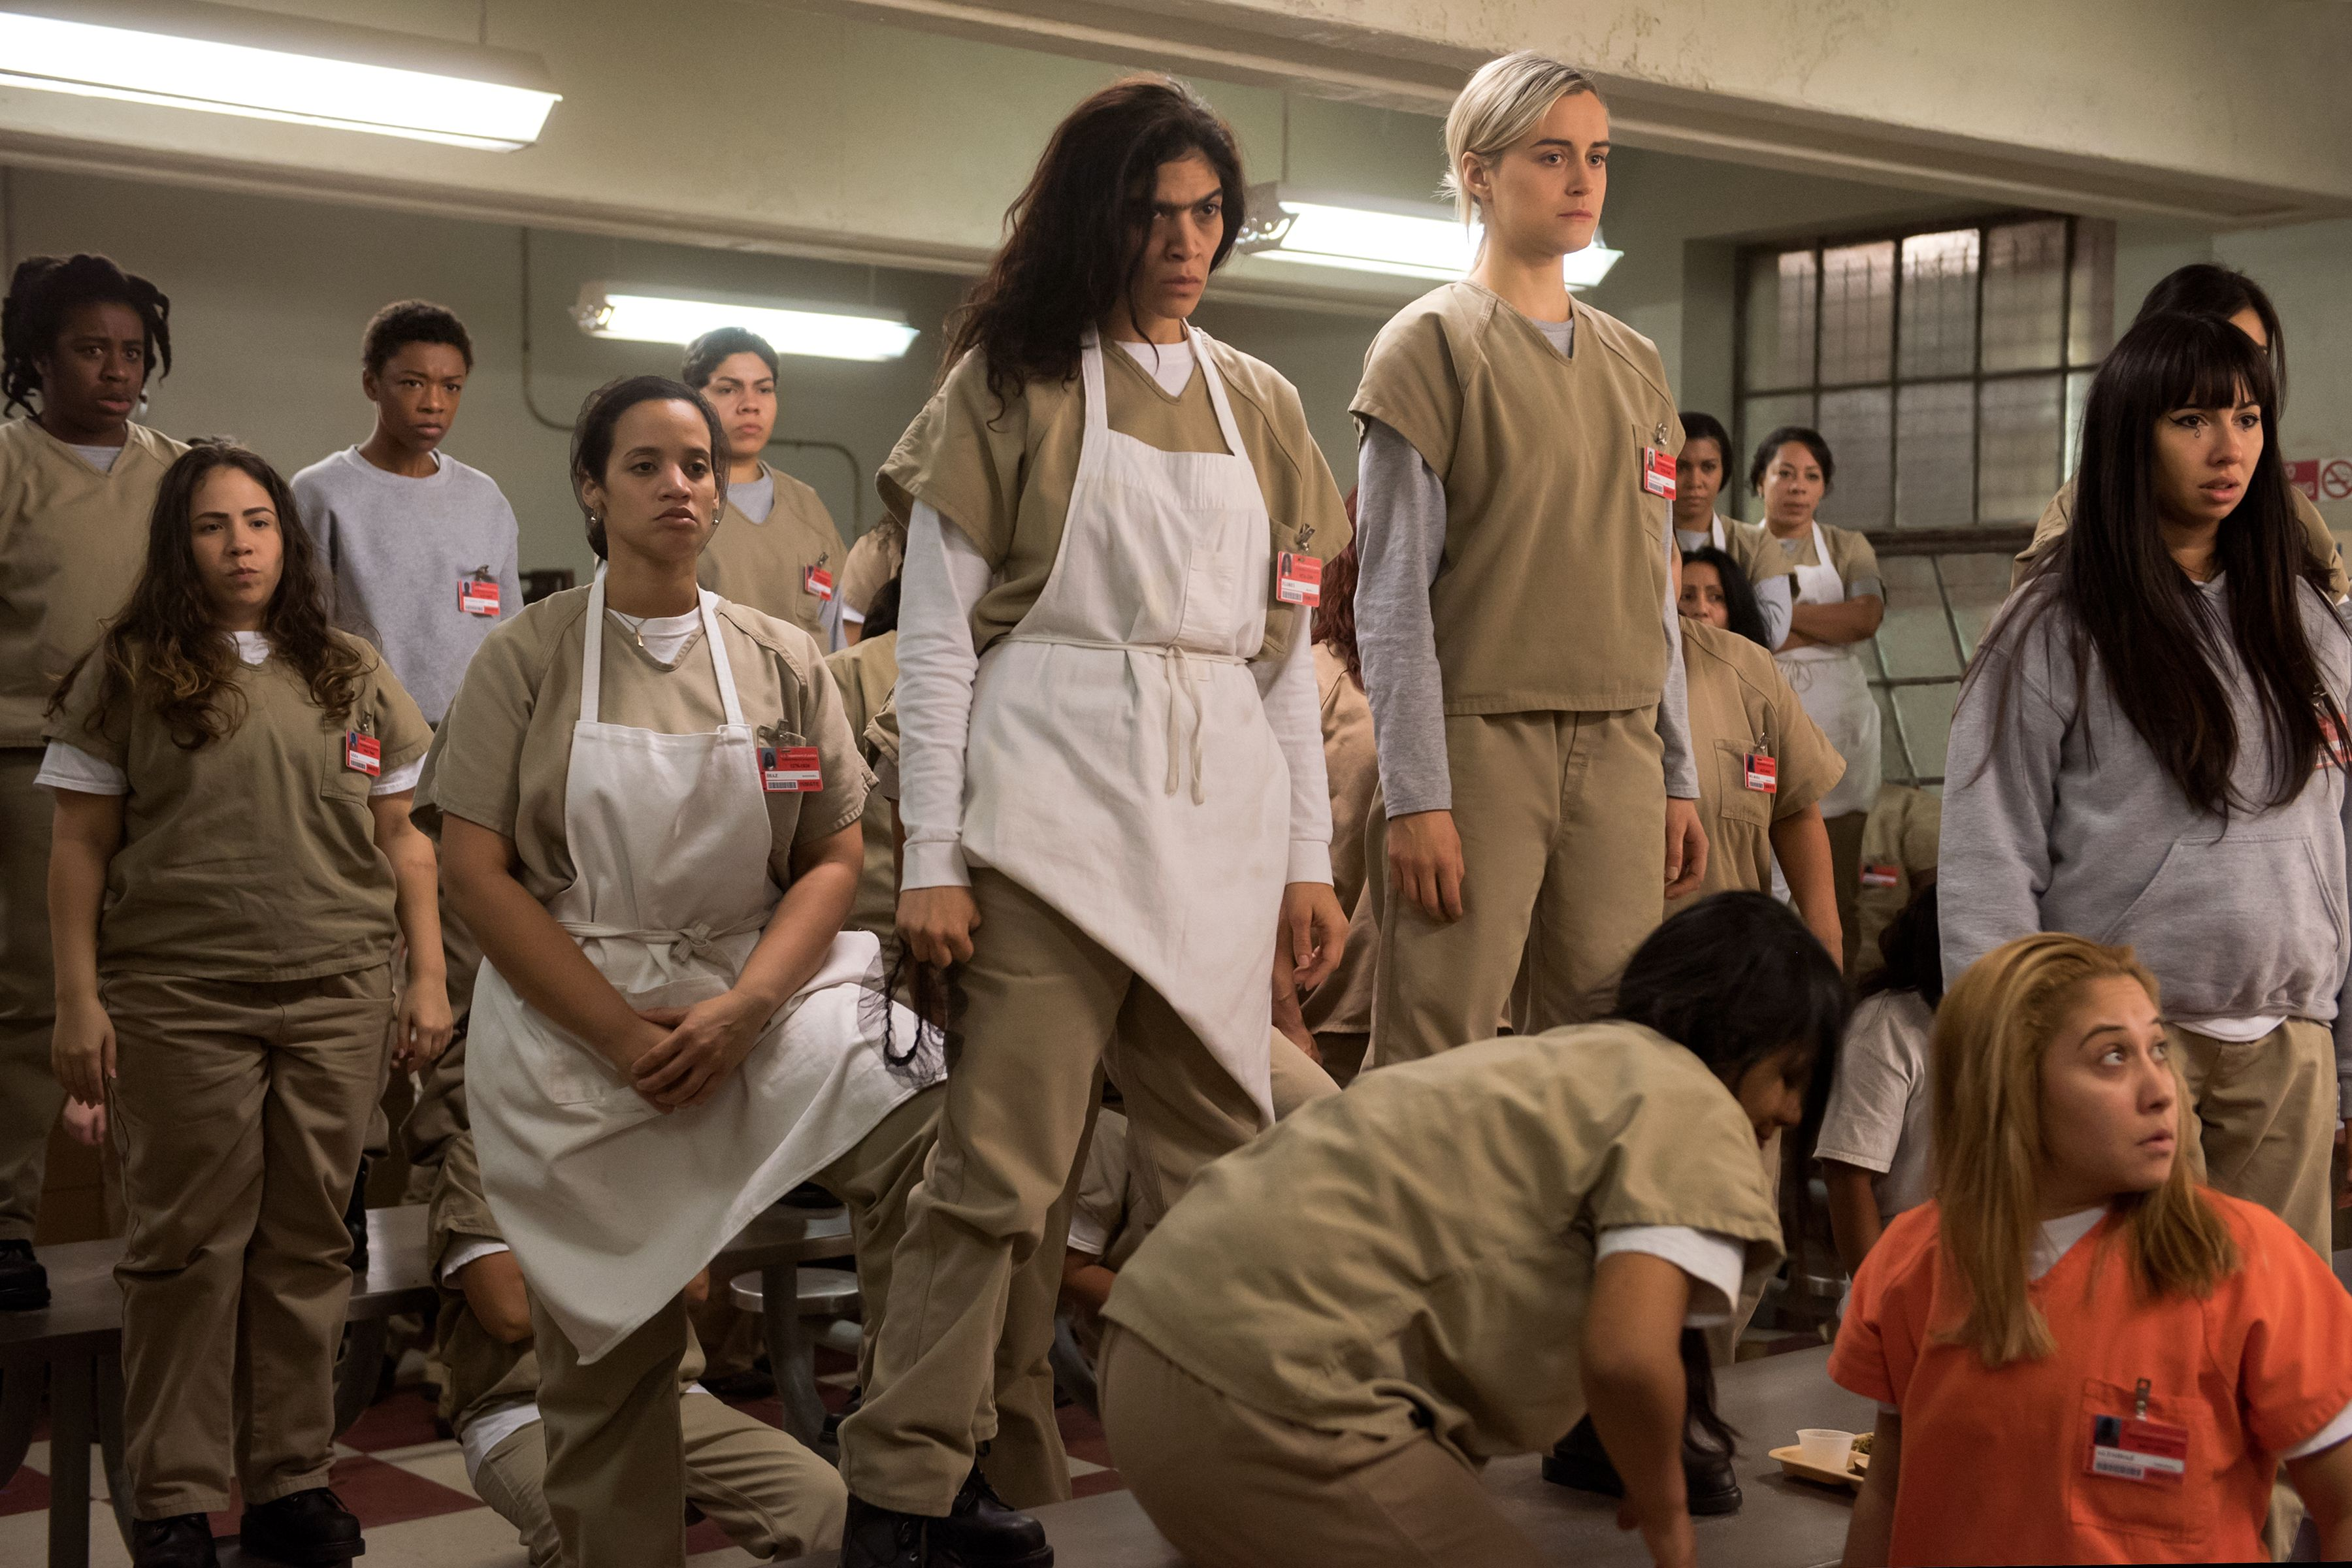 TRAILER: With Latinas Rising Up, Shit's About to Get Real on Season 4 of 'Orange Is the New Black'